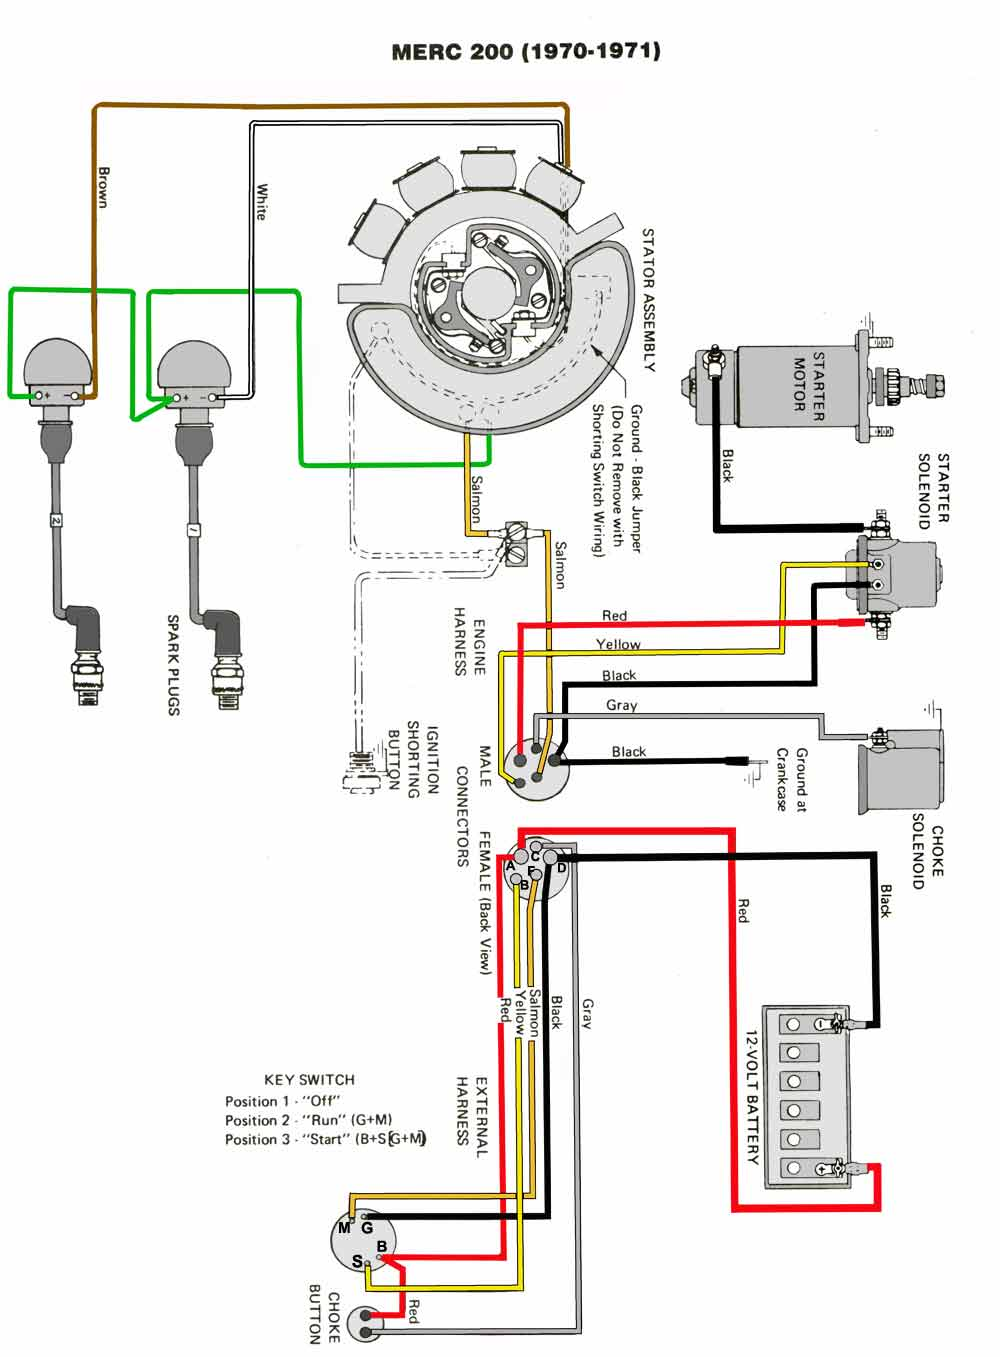 mercury outboard wiring diagrams mastertech marin rh maxrules com 2006 Mercury Milan Engine Diagram Mercury Outboard Engine Parts Diagram